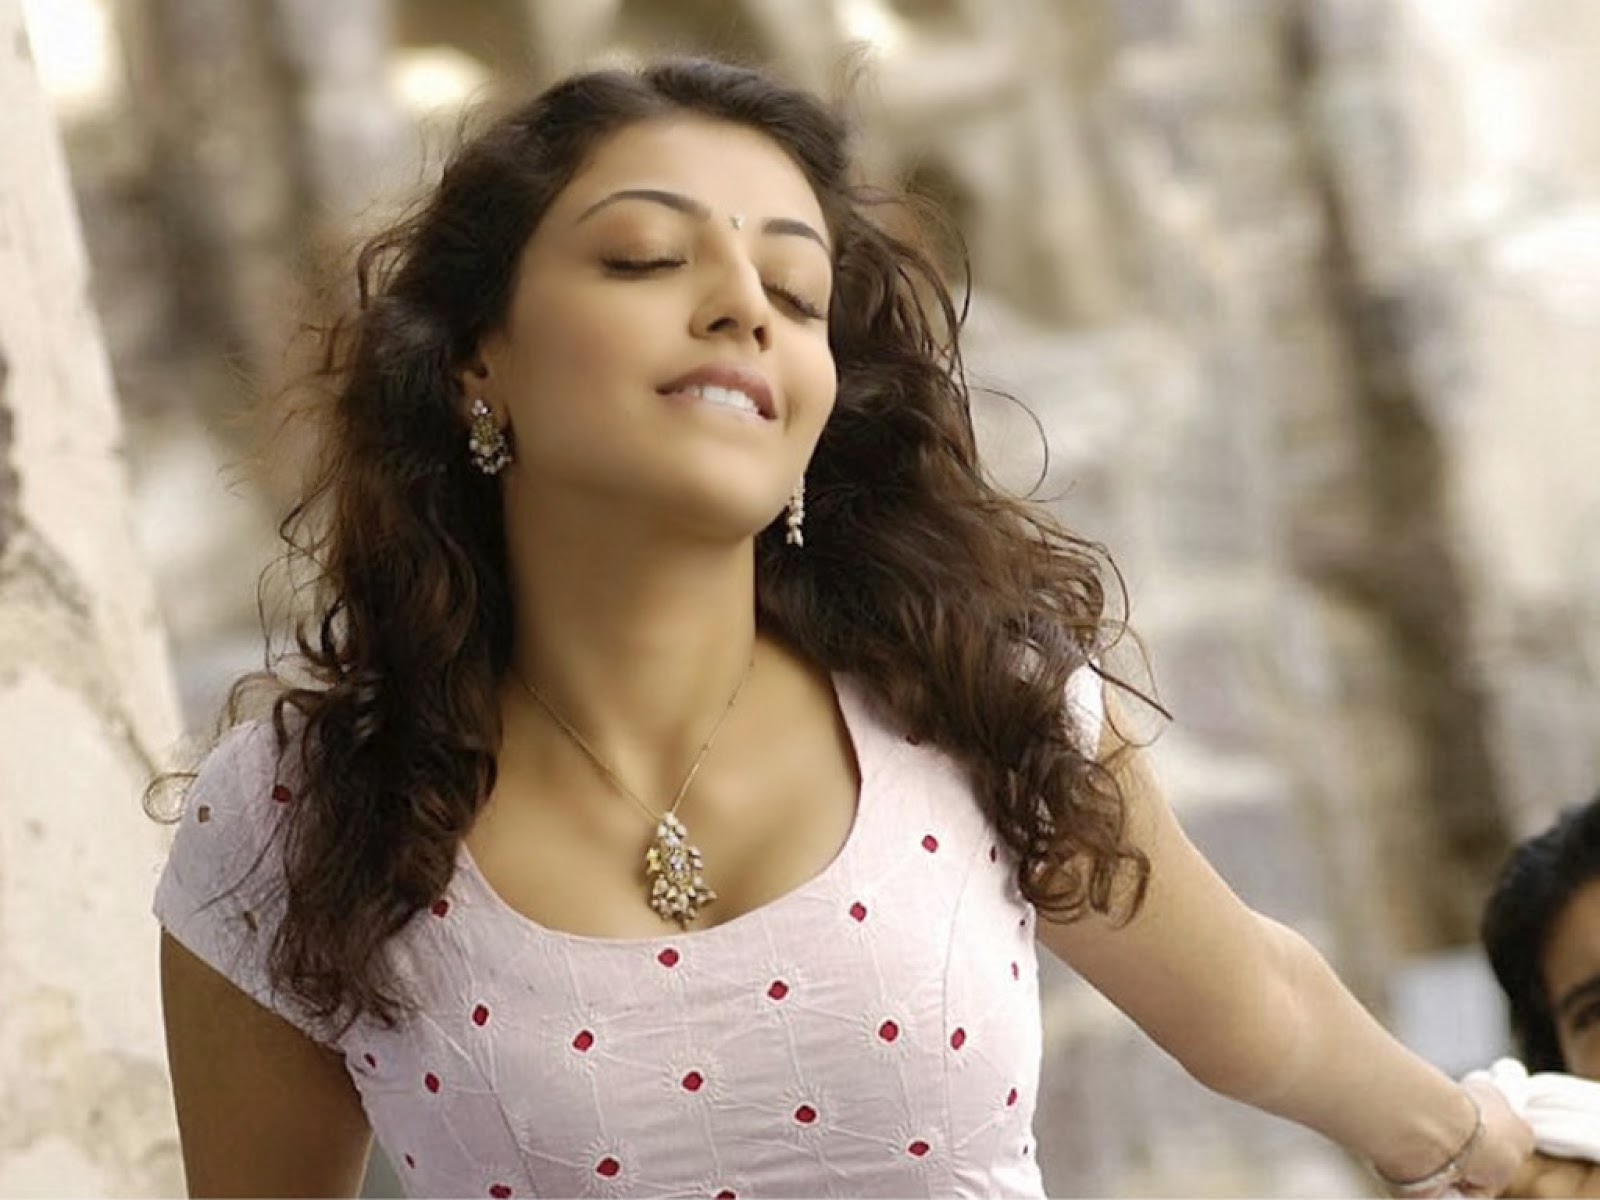 mohanlal-vjay-kajal-agarwal-hot-in-jilla-film-shooting-with-navel-wallpapers-kiss-stills-bikini-photos-in-saree-images-latest-free-download-photoshoot-pics-lip-pic-hd-scenes-without-dress-maxim-clothes-for-romance-sexy-waist-jeans-wet-gym-picture